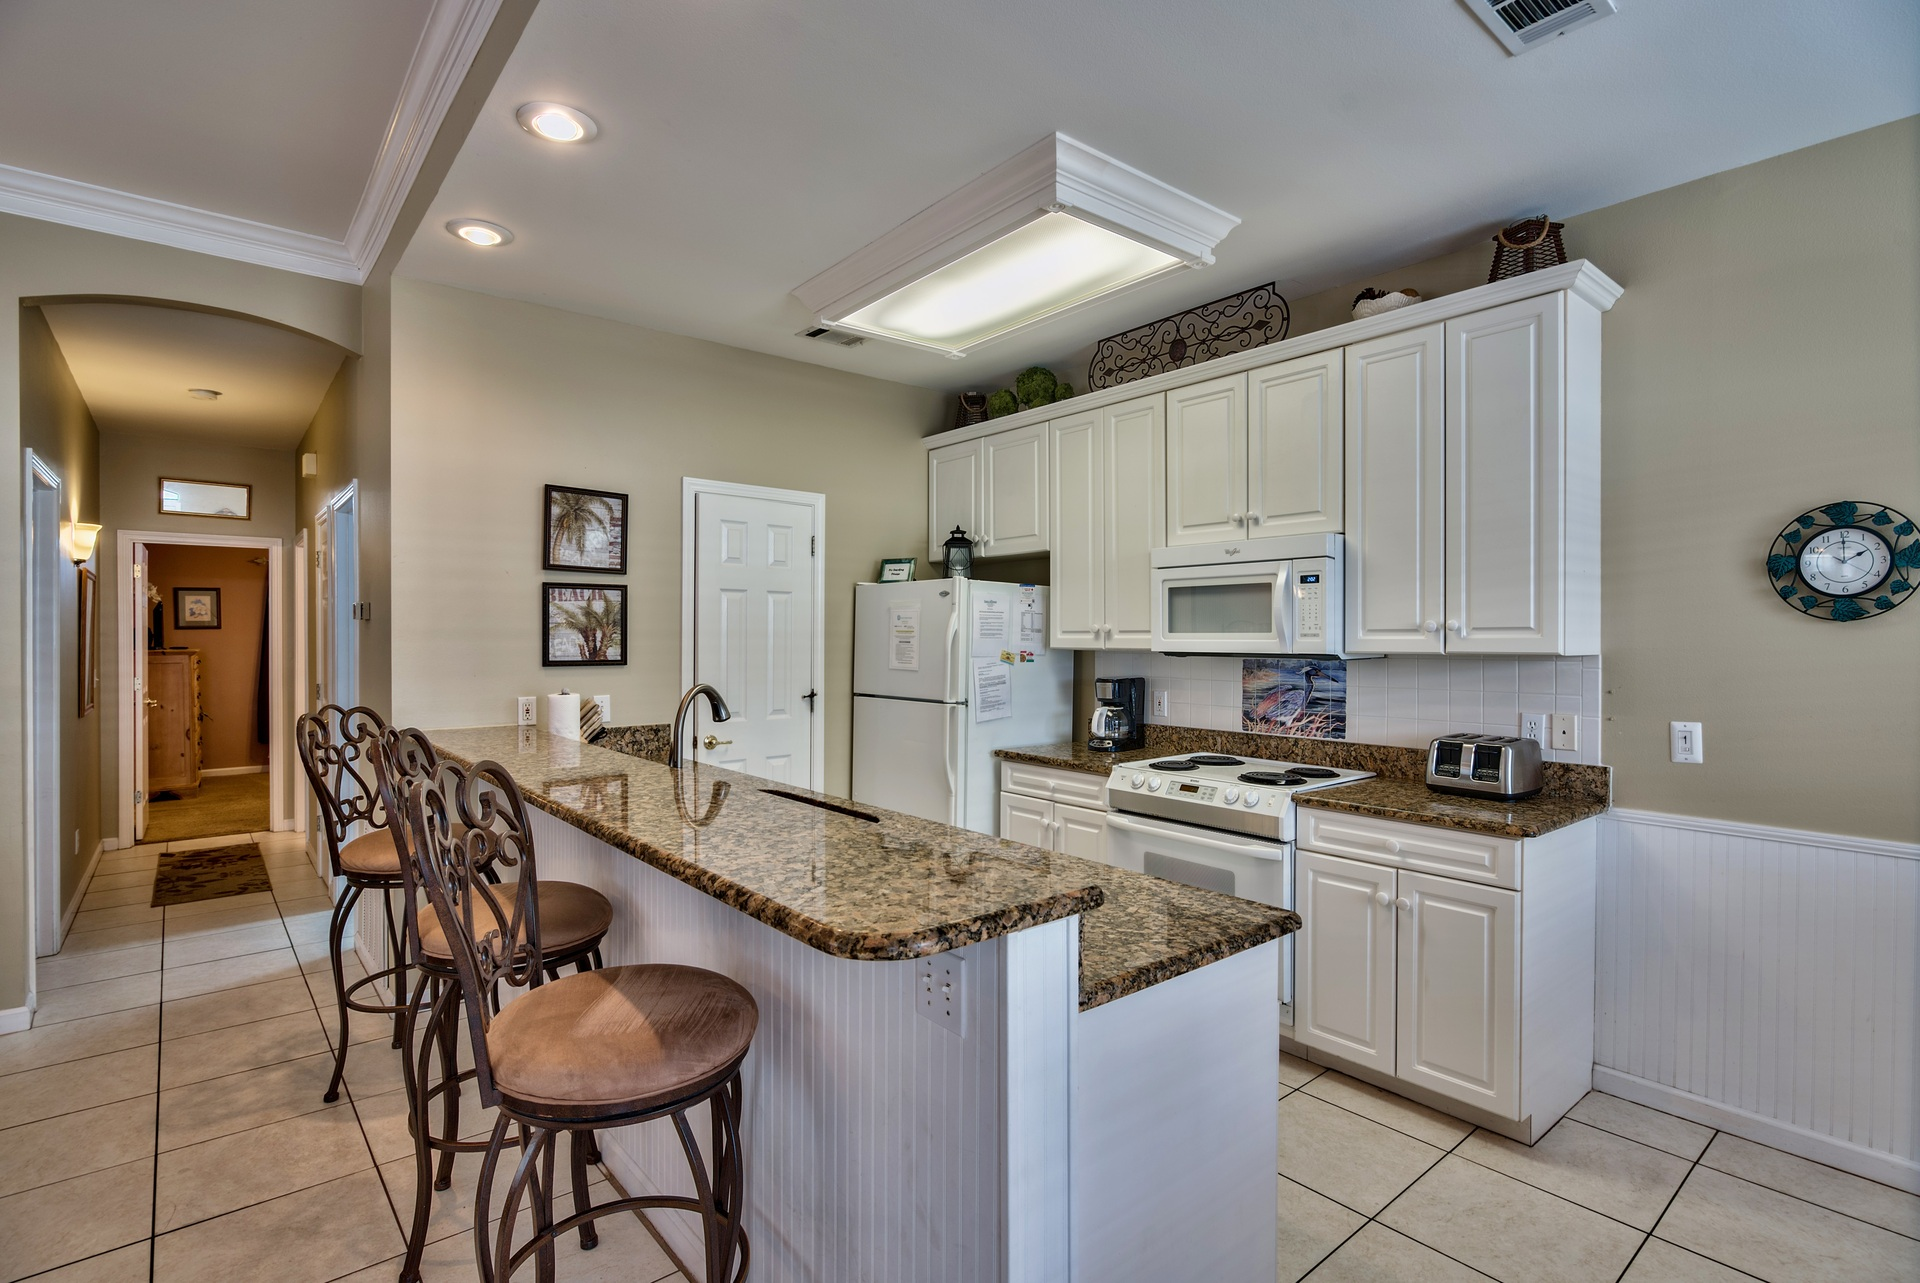 Fully Equipted Kitchen, With Granite Countertops